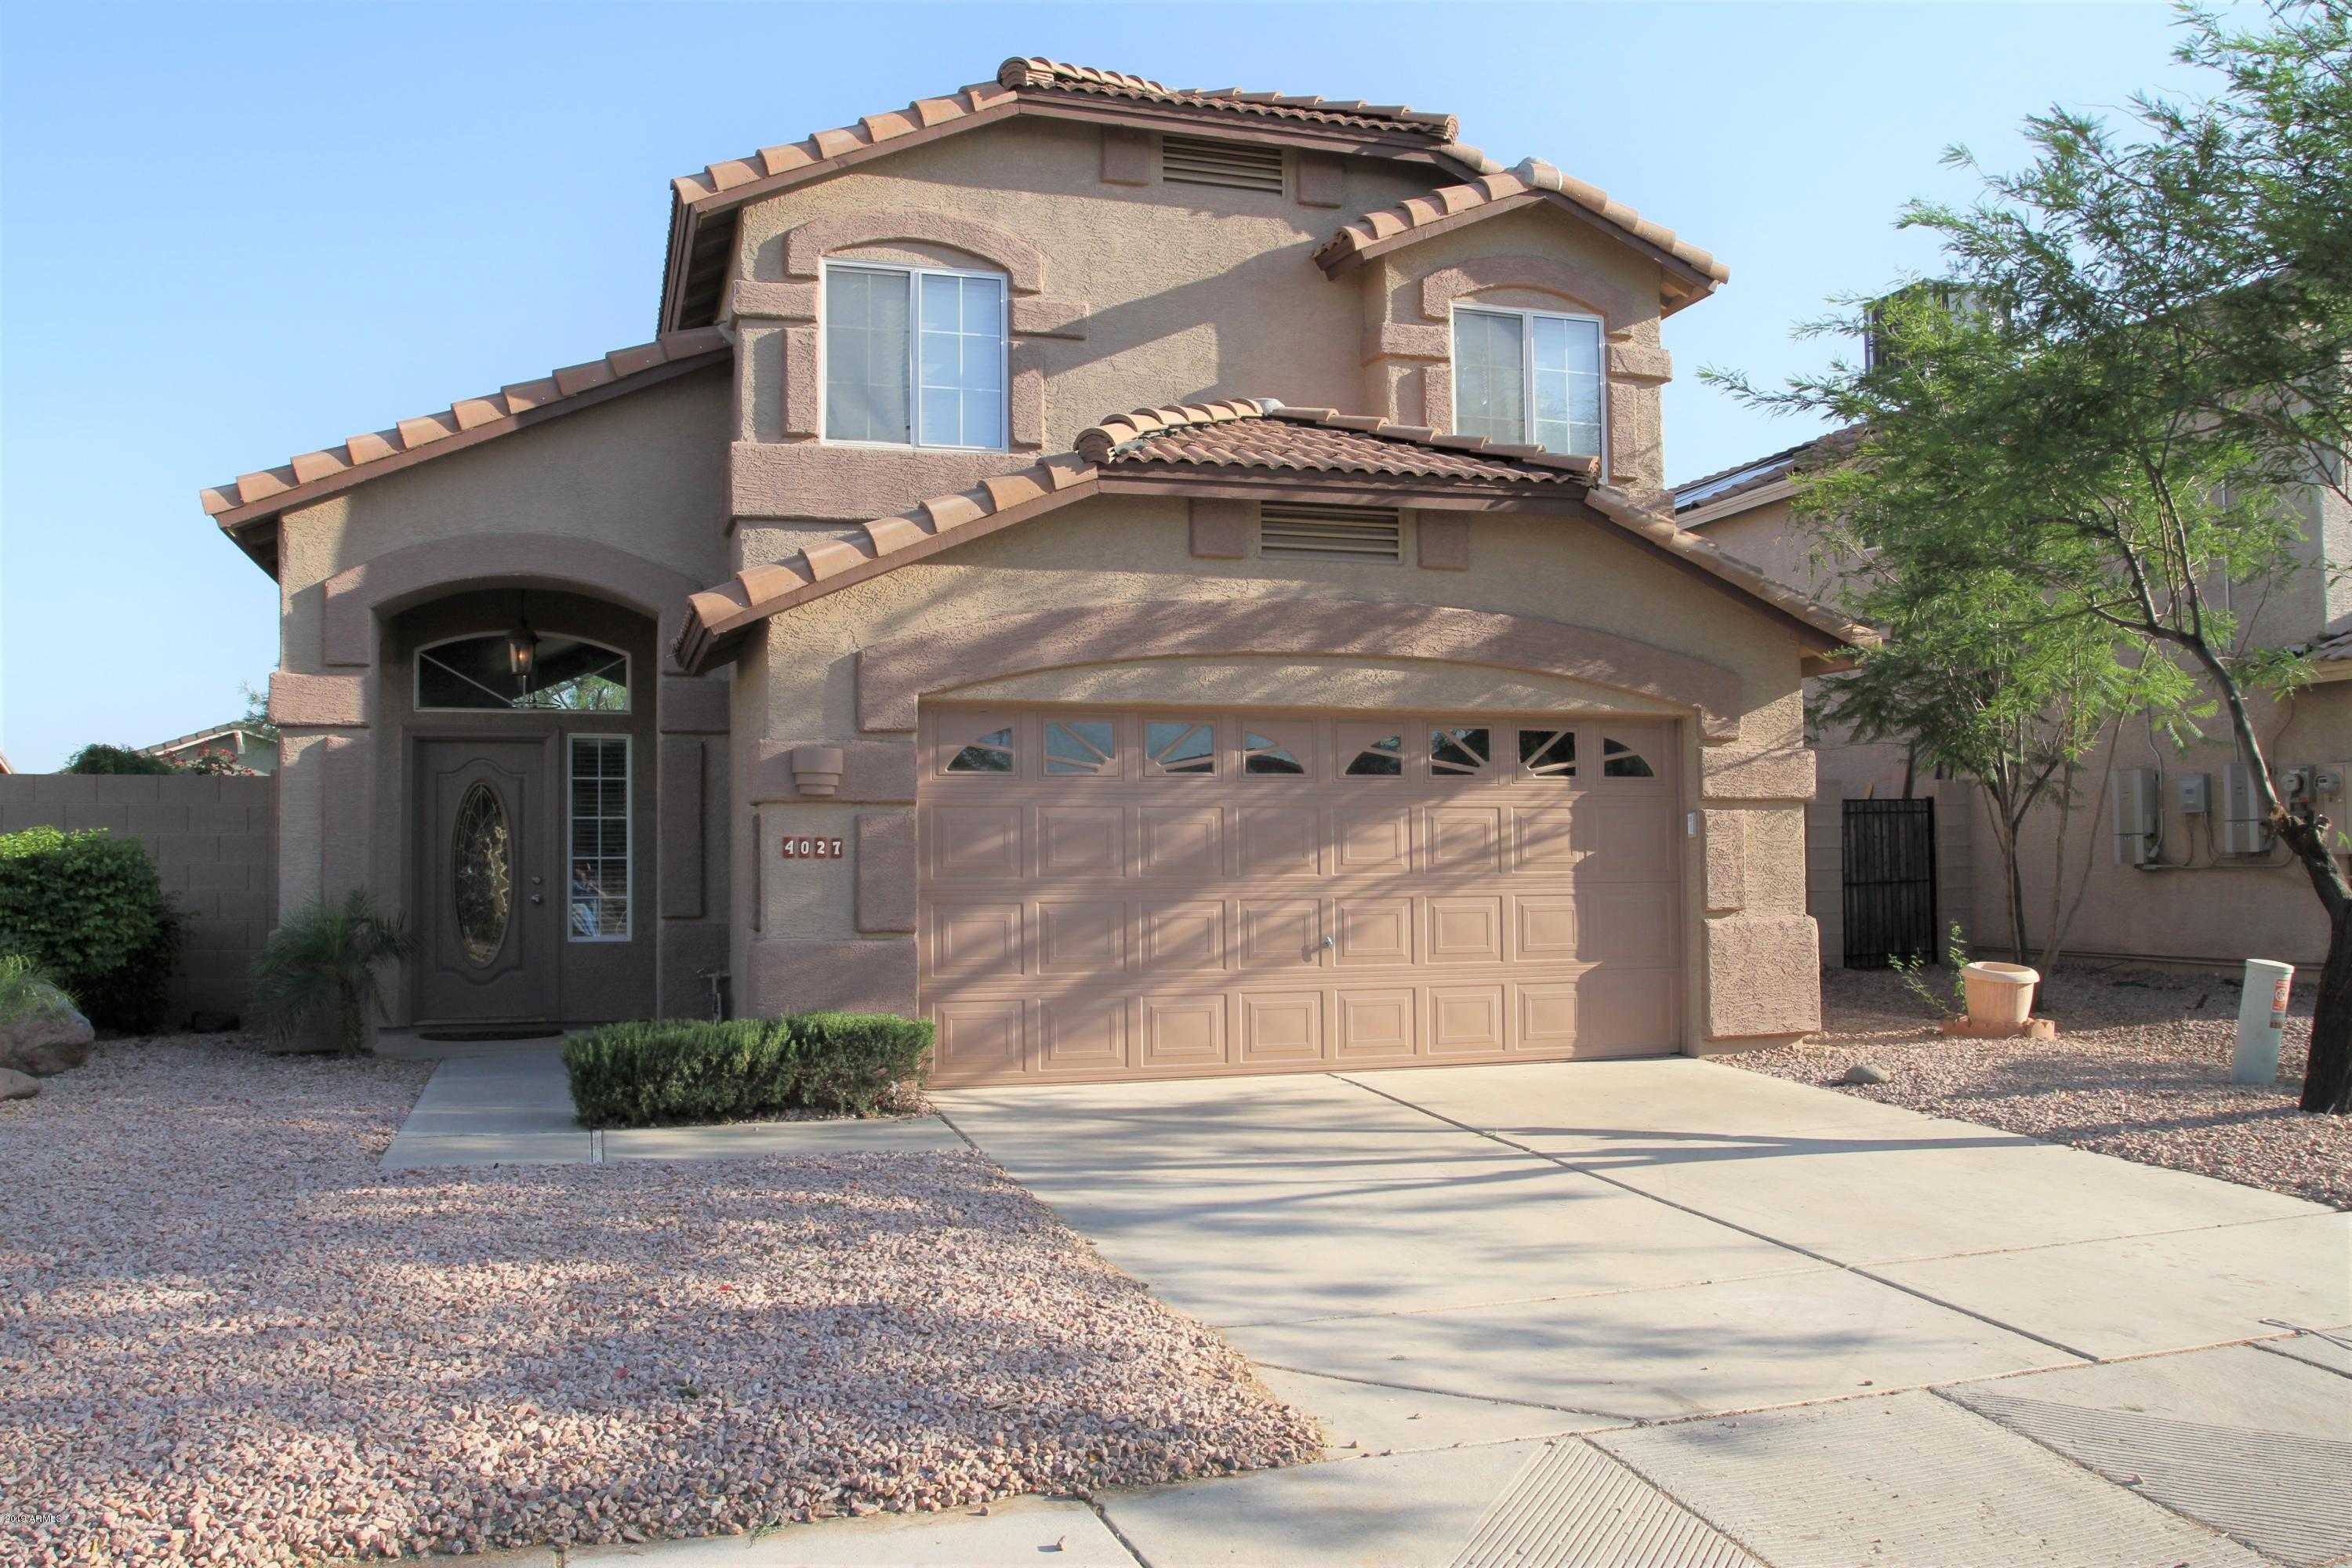 $335,000 - 3Br/3Ba - Home for Sale in Sunset Canyon, Glendale